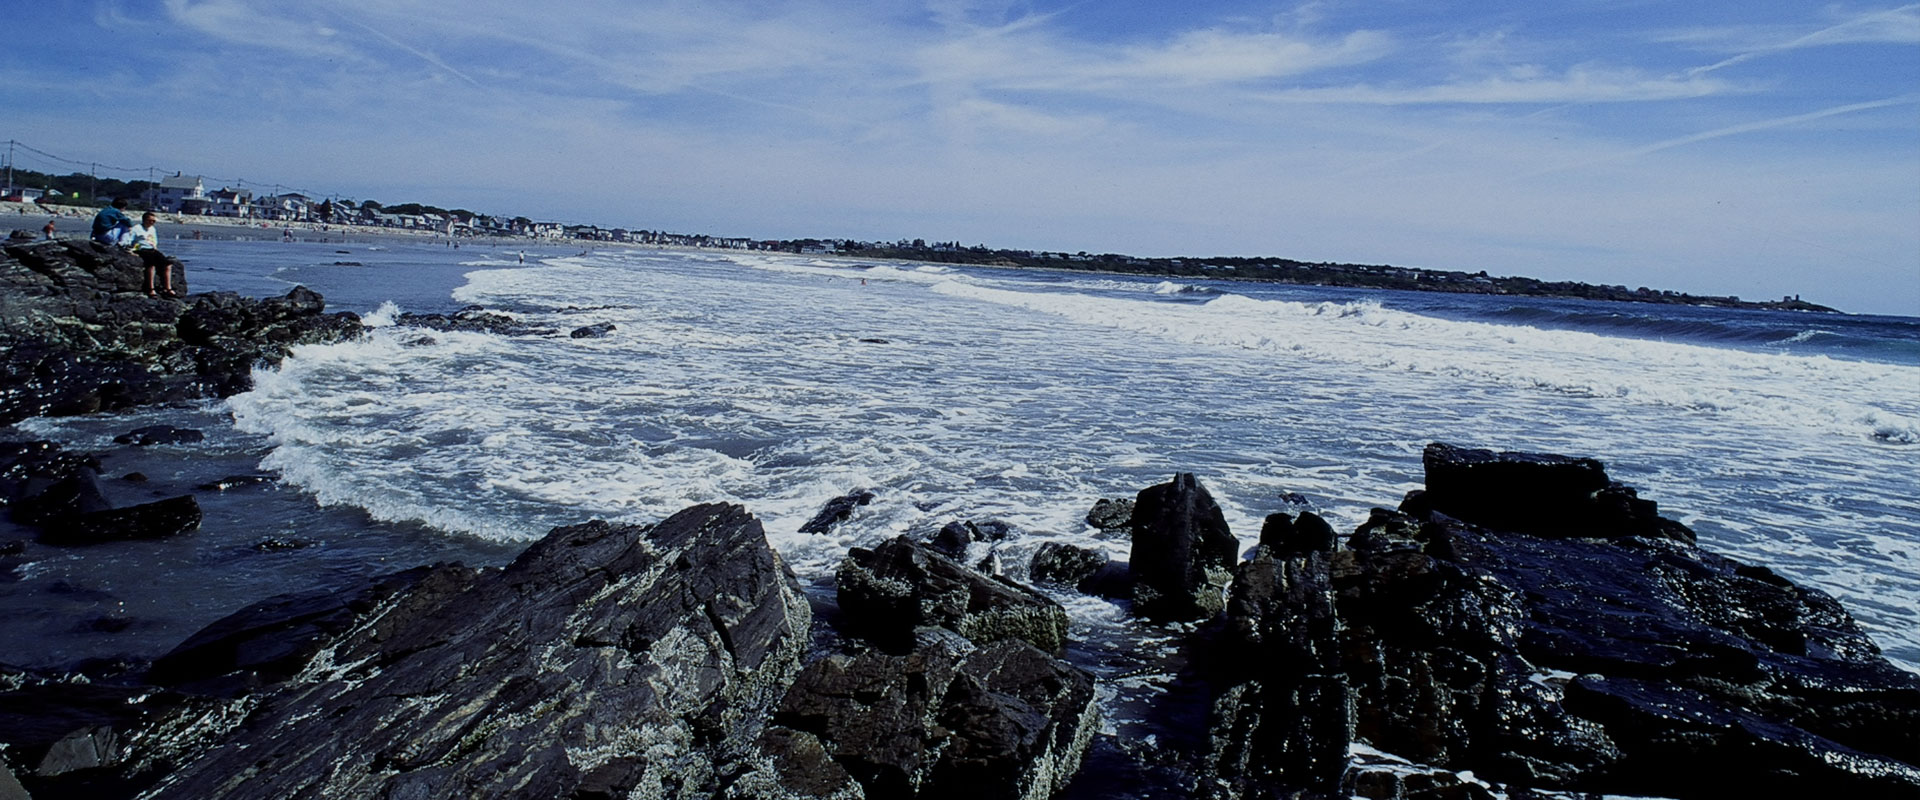 York Beach Maine Hotels | Things to do on the Coast in Maine